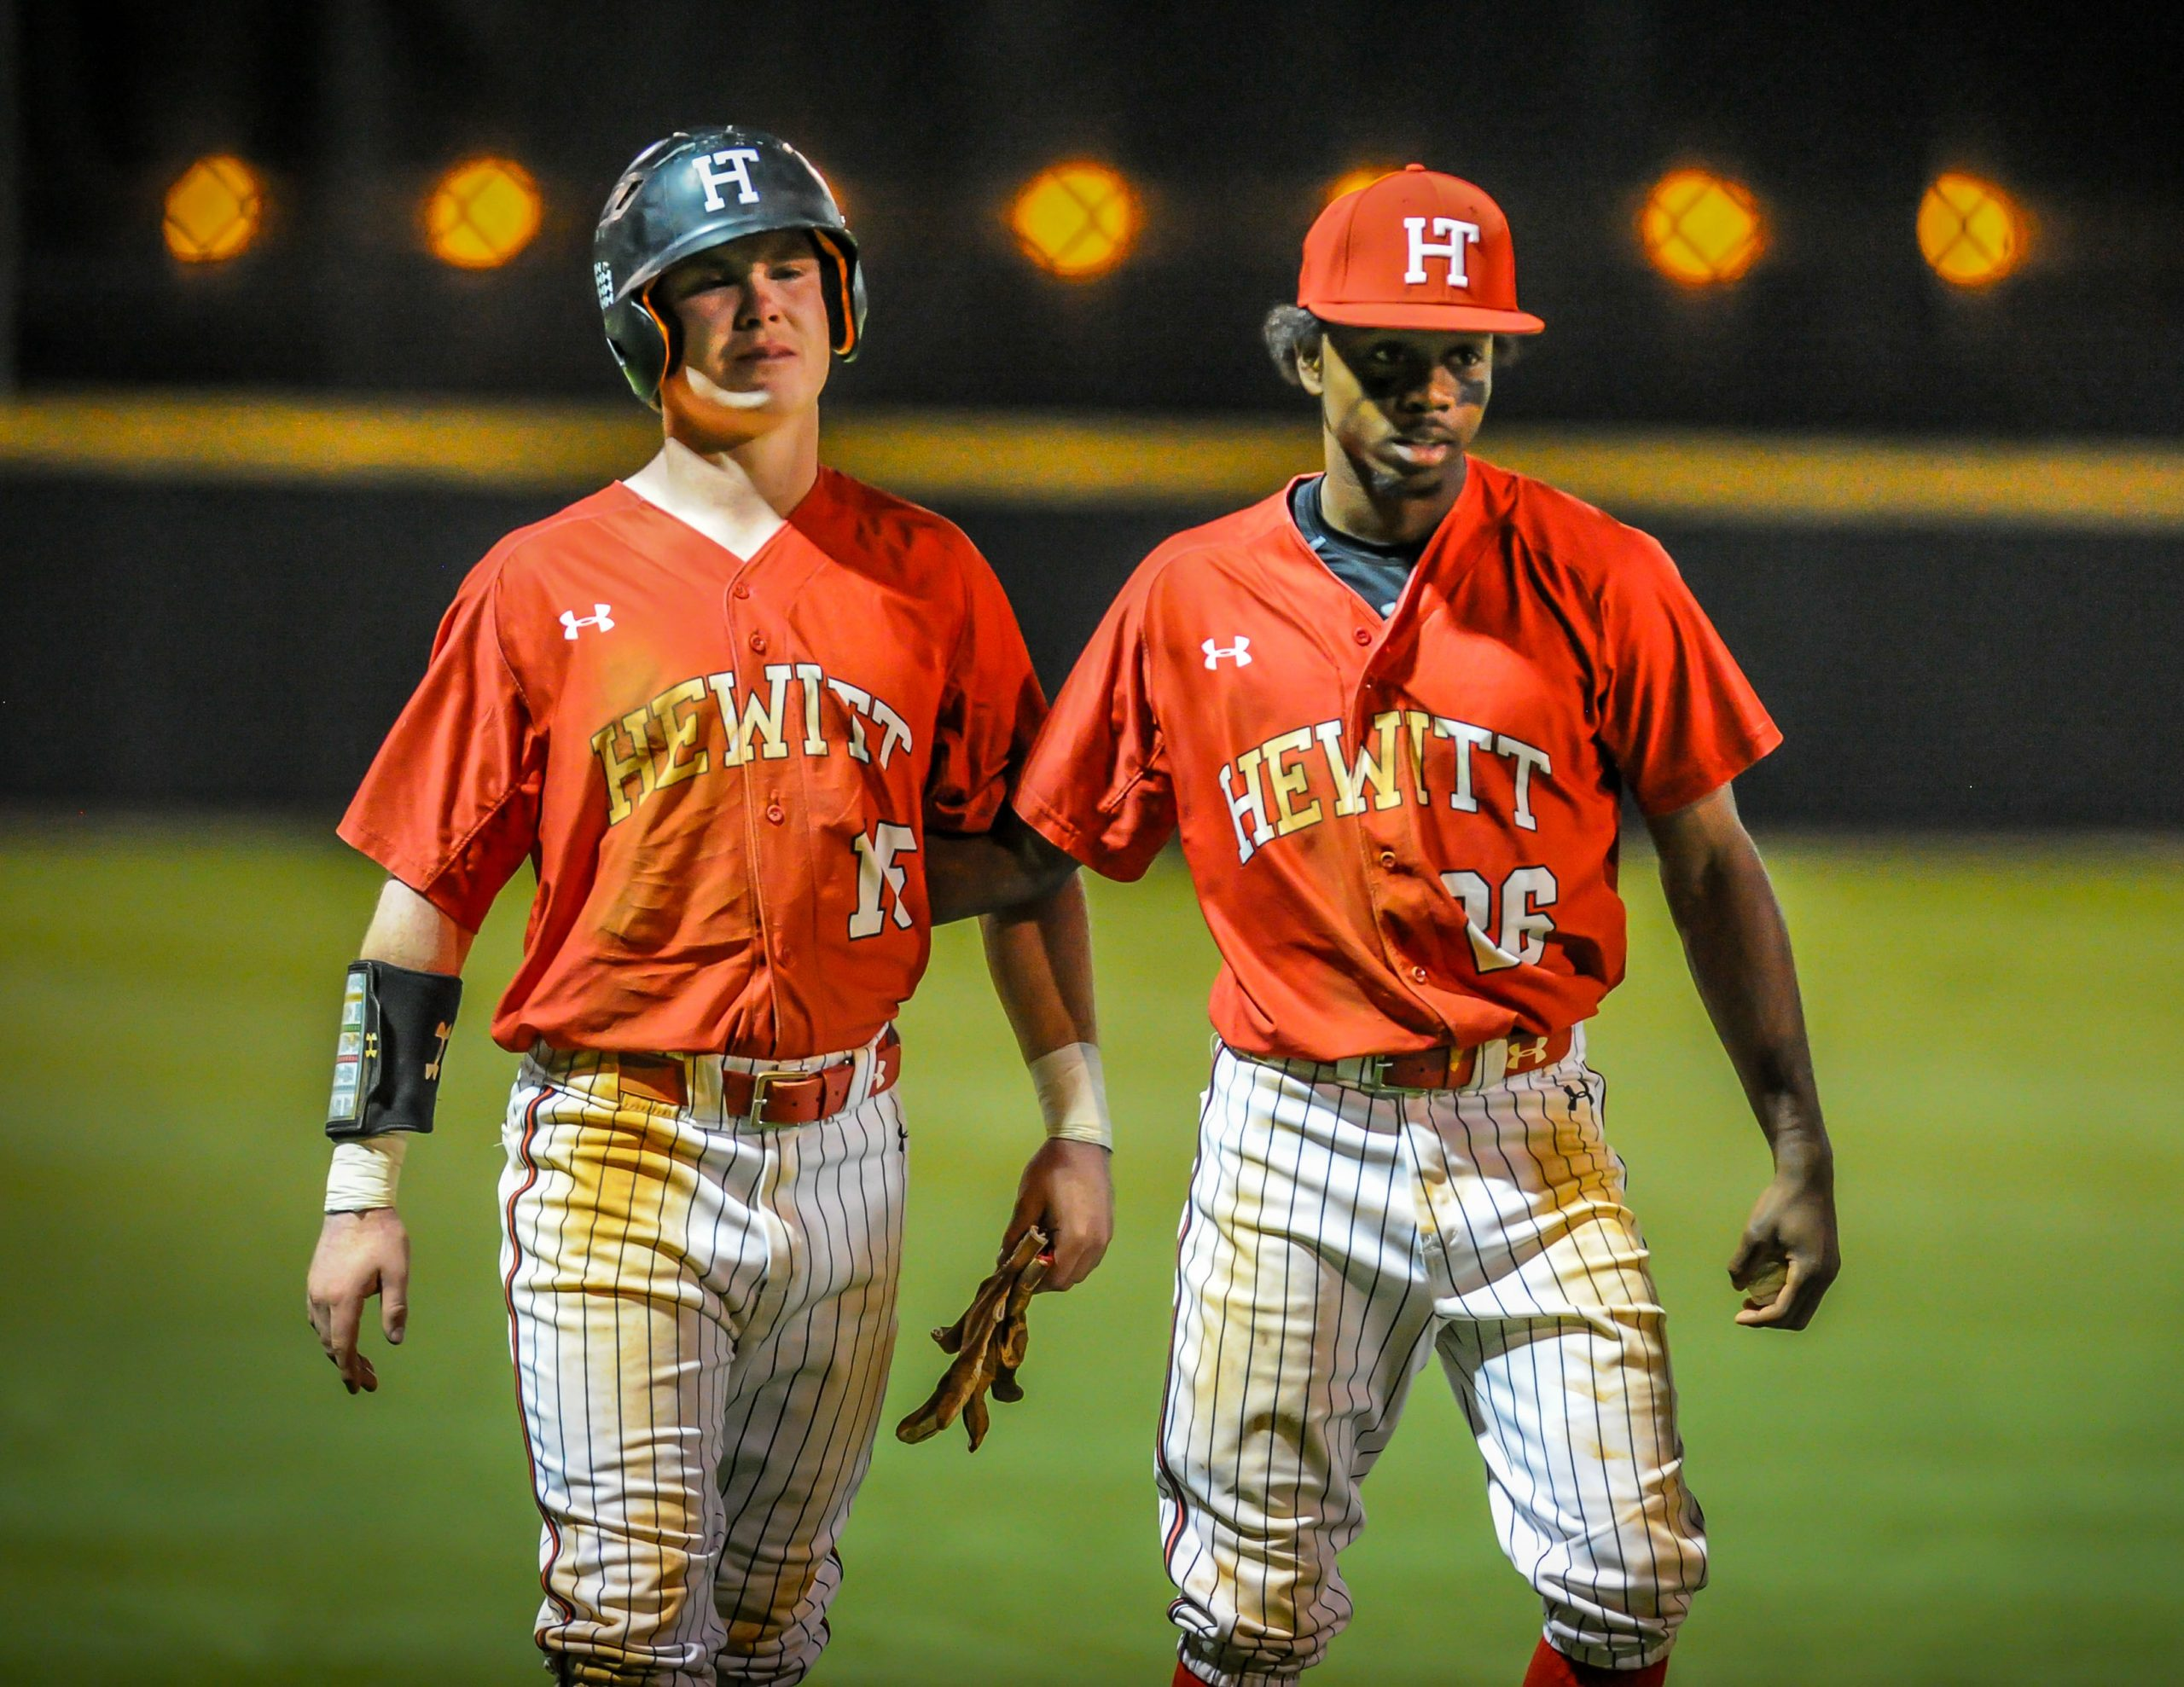 No. 1 Hewitt-Trussville falls twice to Hoover, ends season at 28-6